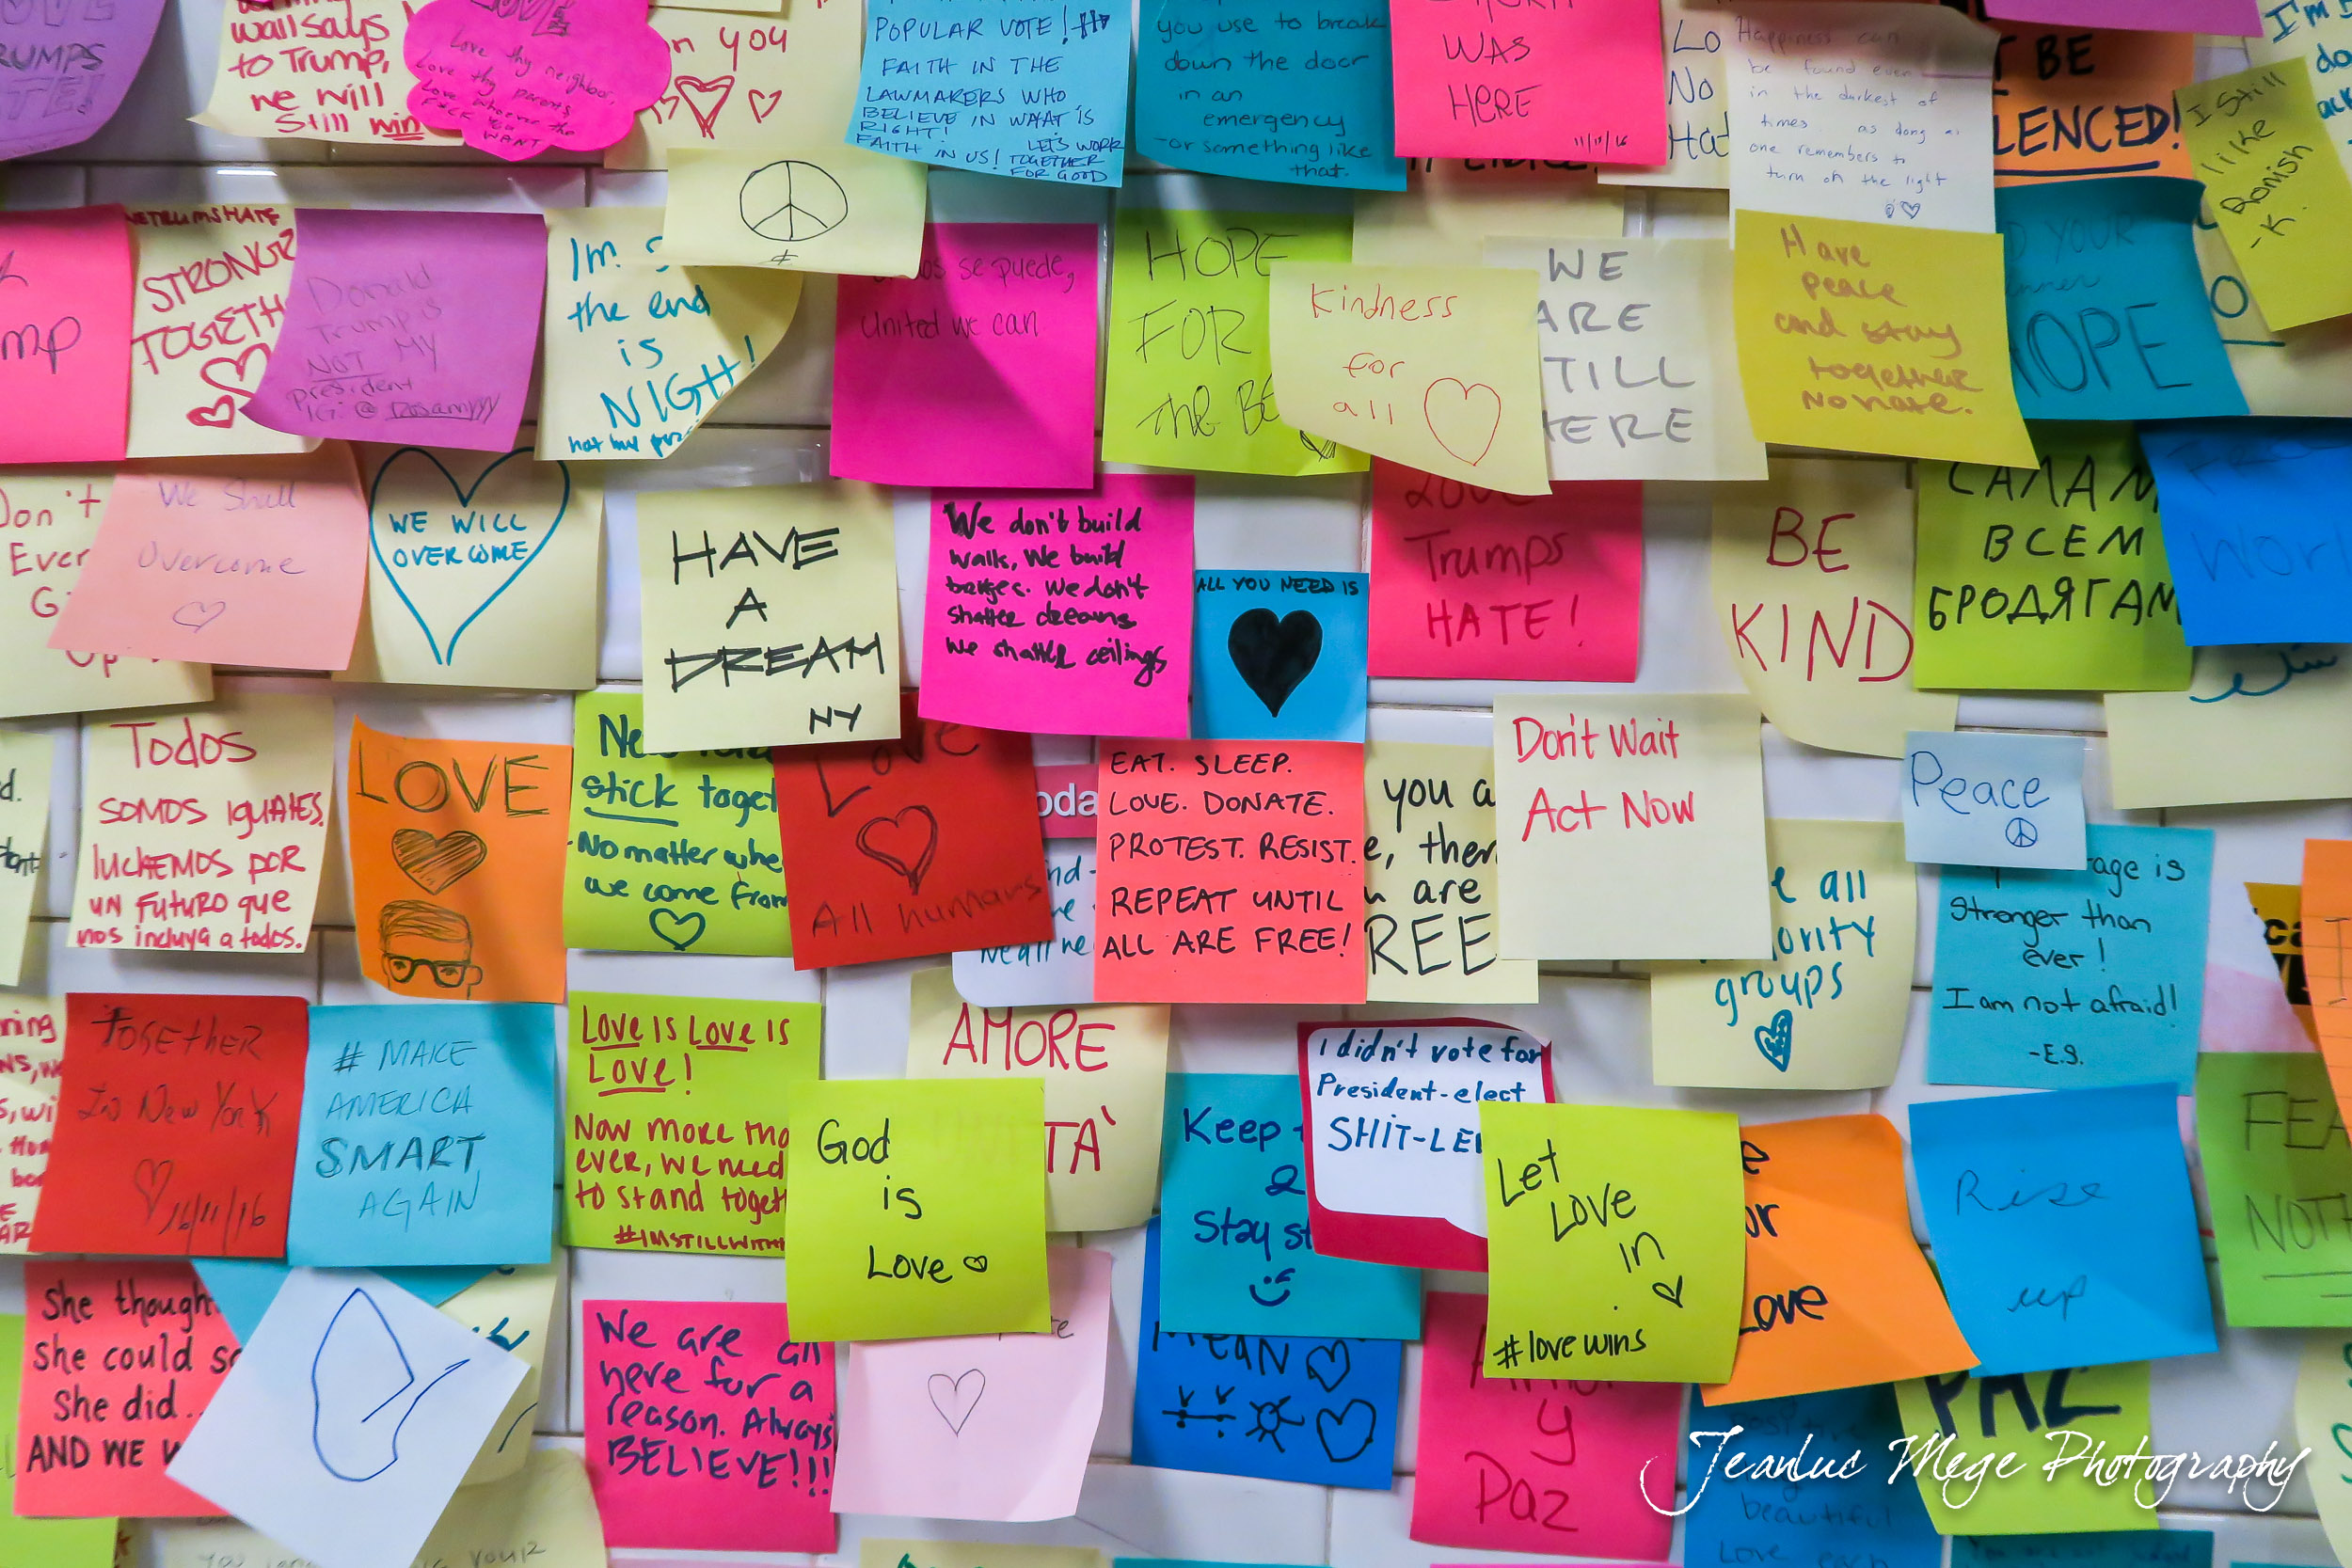 Love Wall Trump Union Square Nyc@jeanlucmege-0103.jpg